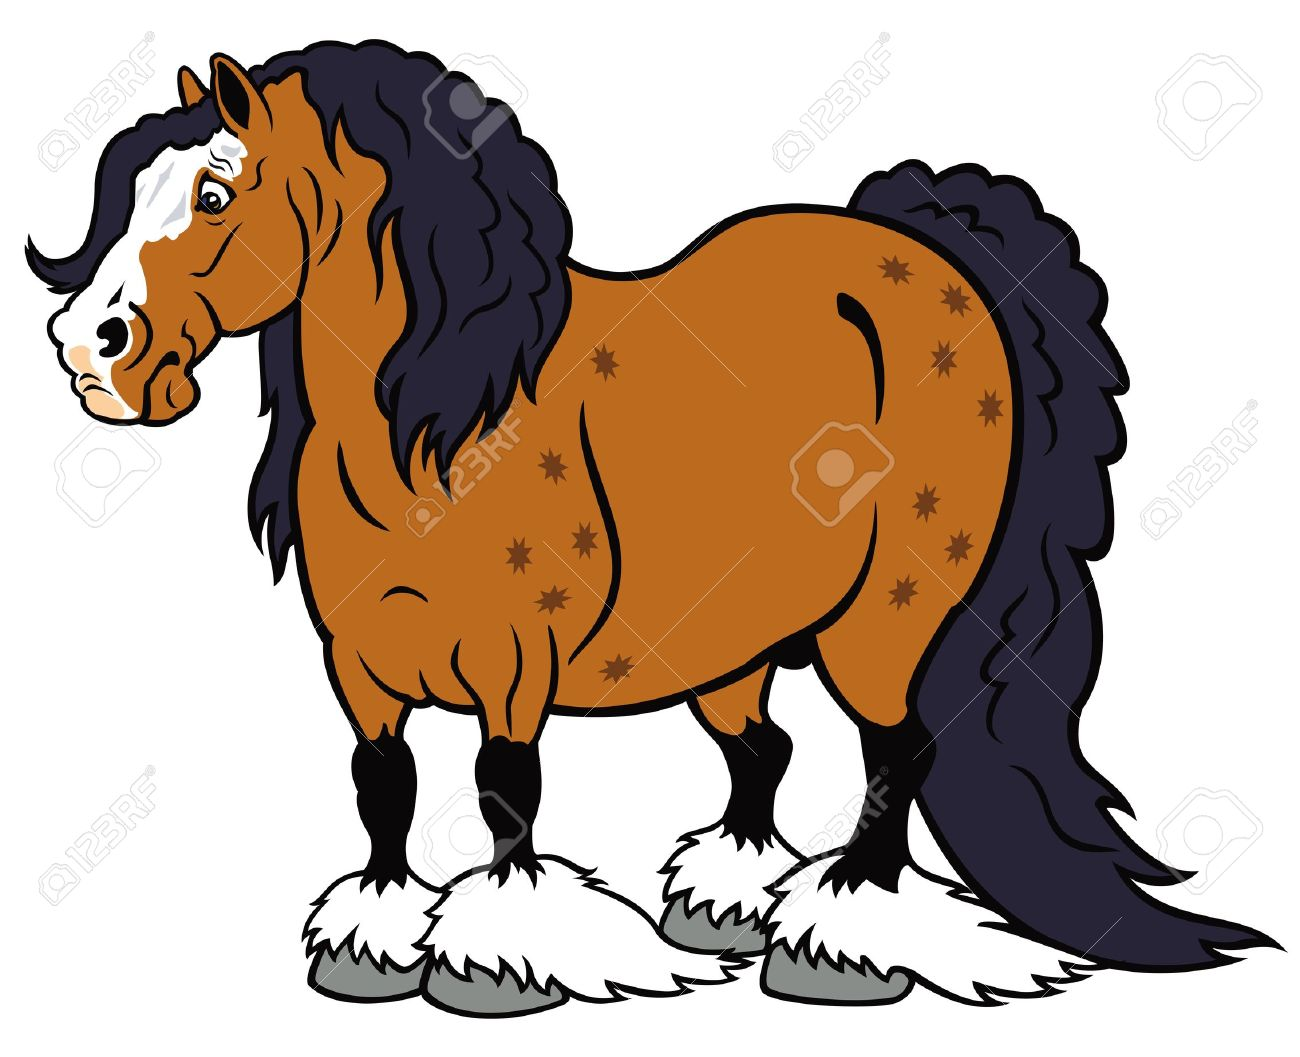 Clydesdale horses clipart 5 » Clipart Station.